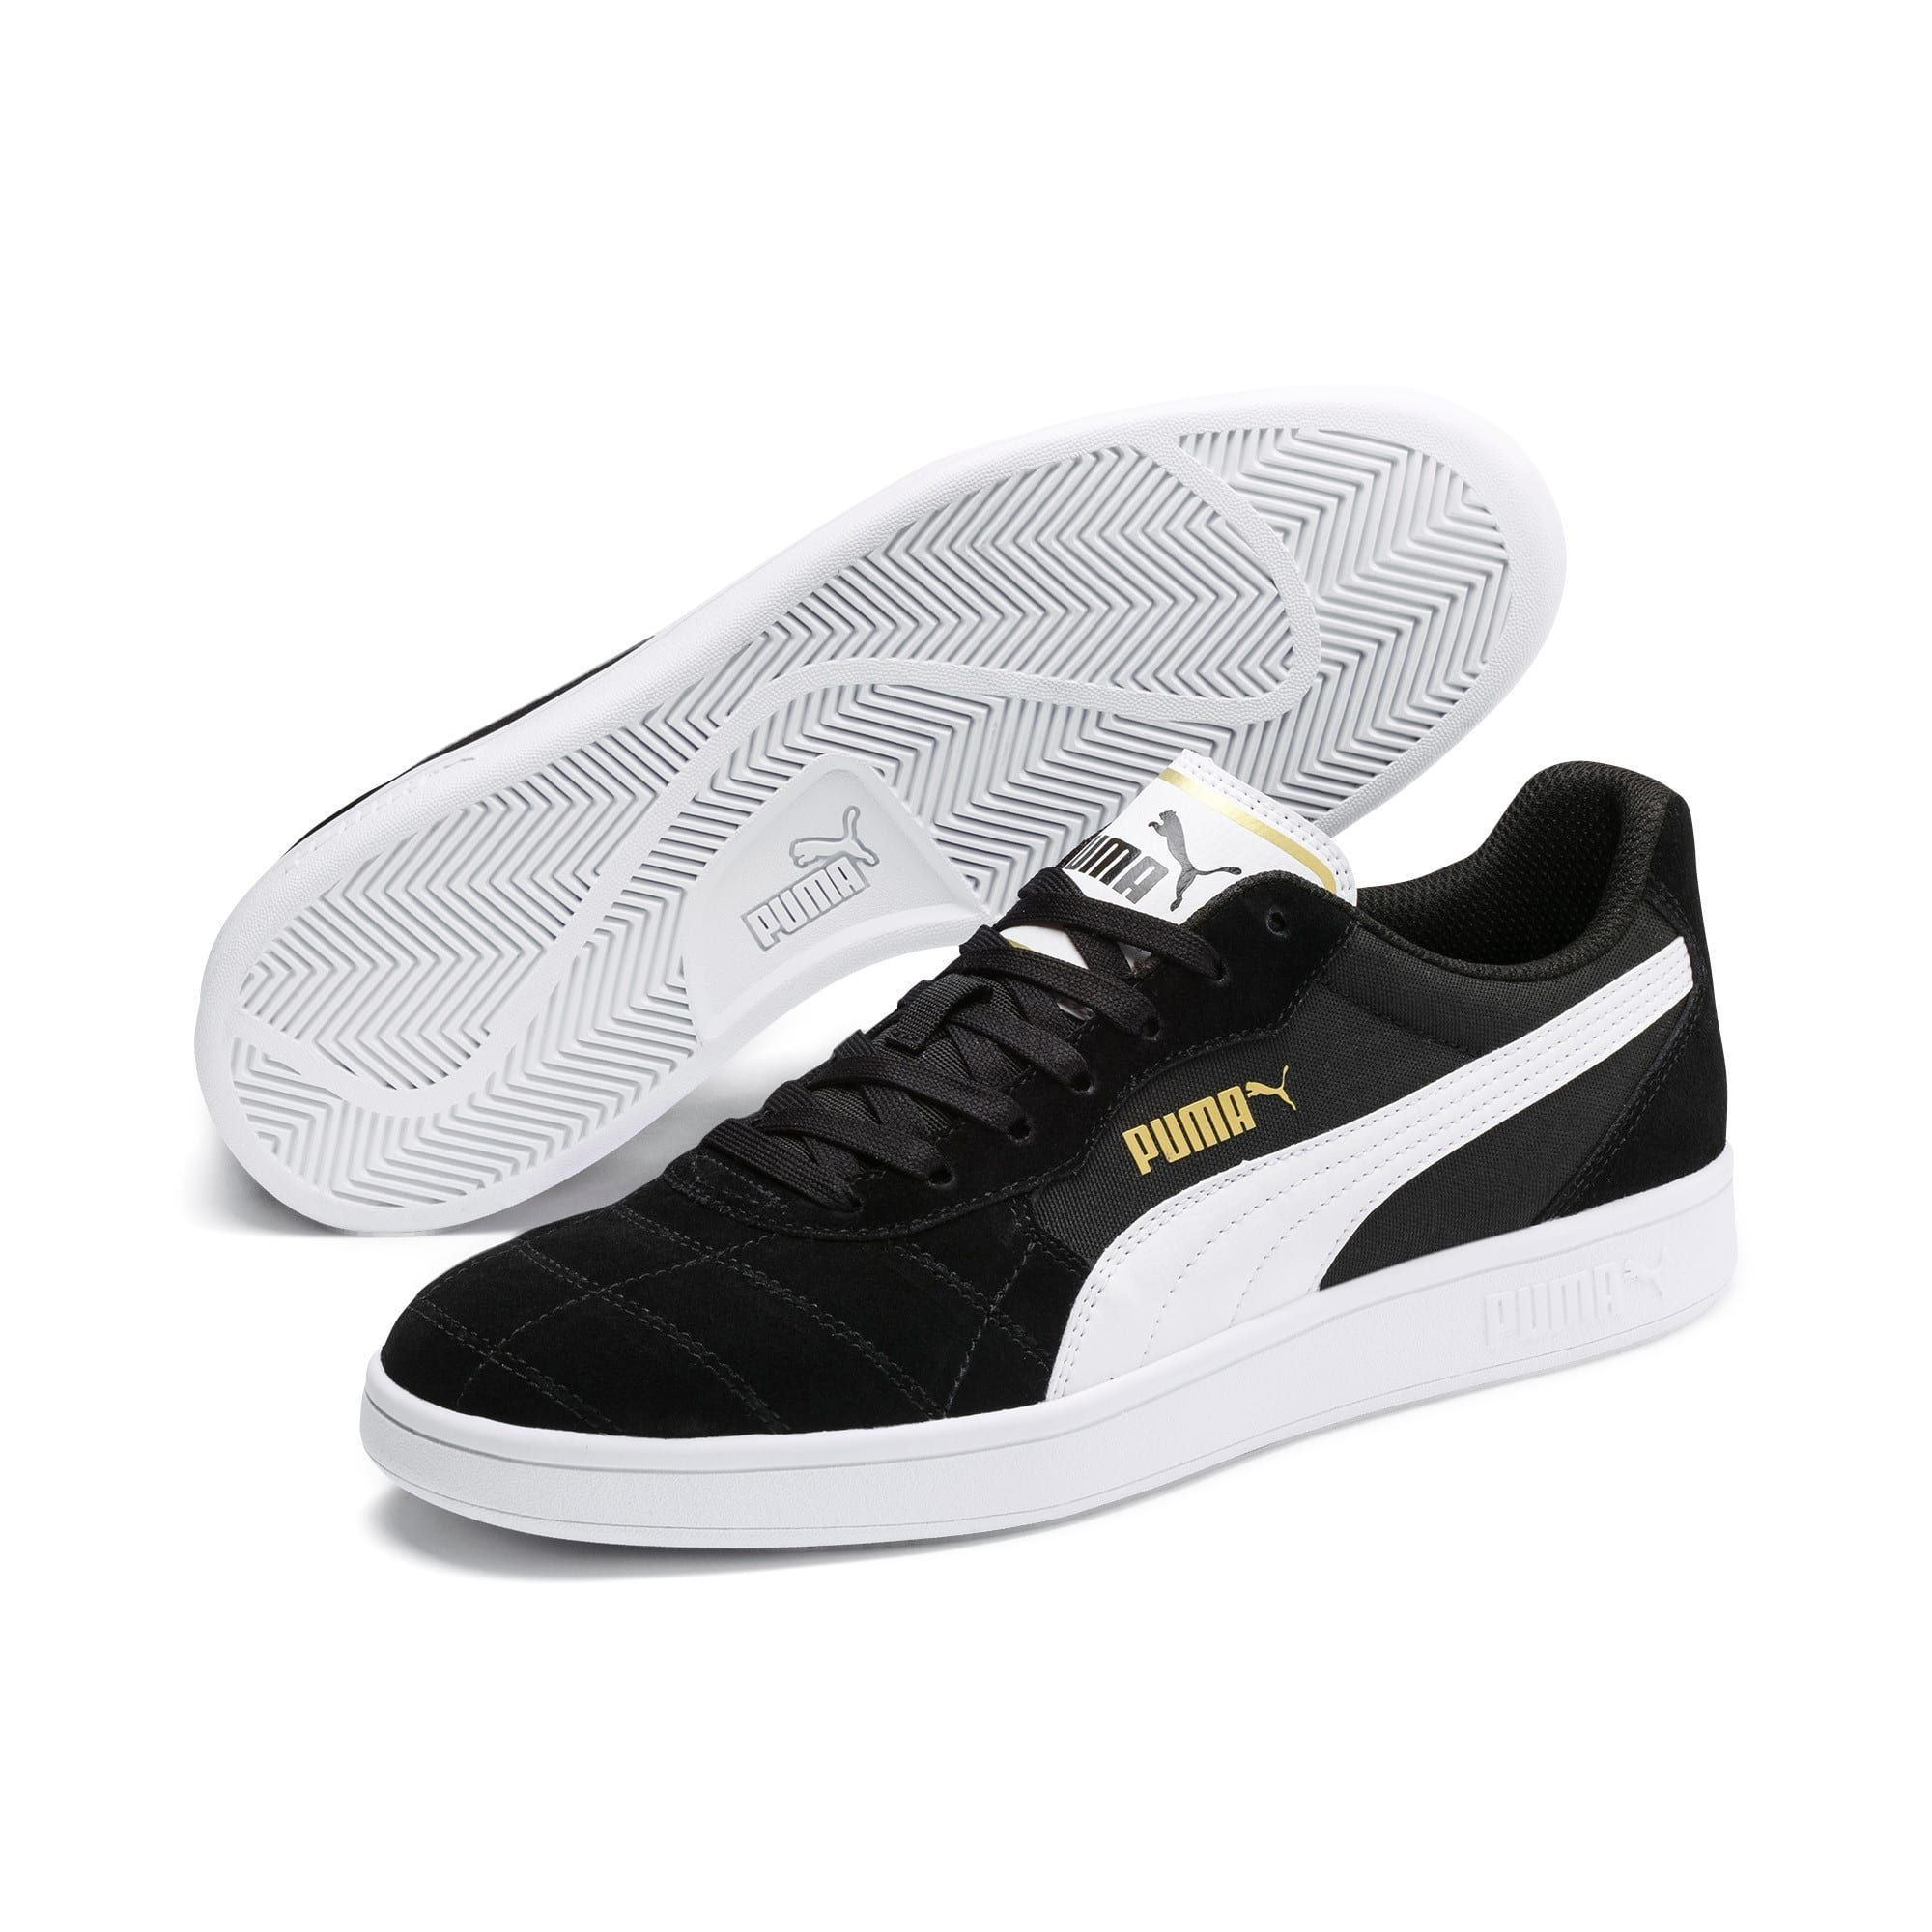 Kick starting your weekend with the launch of these new PUMA